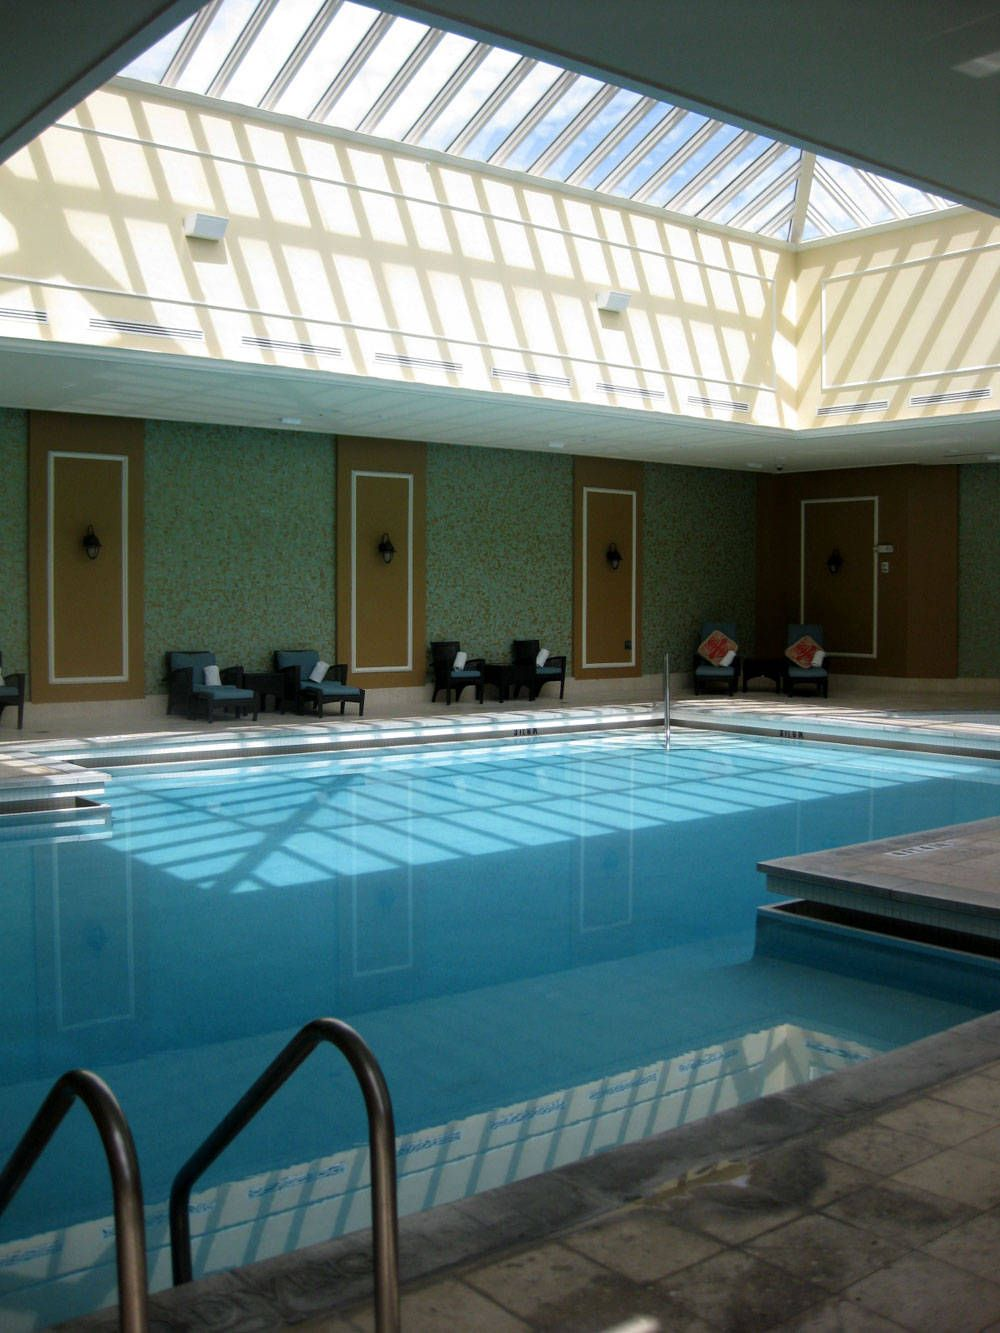 Private Indoor Swimming Pools coolest swimming pool design ideas: nice indoor swimming pool